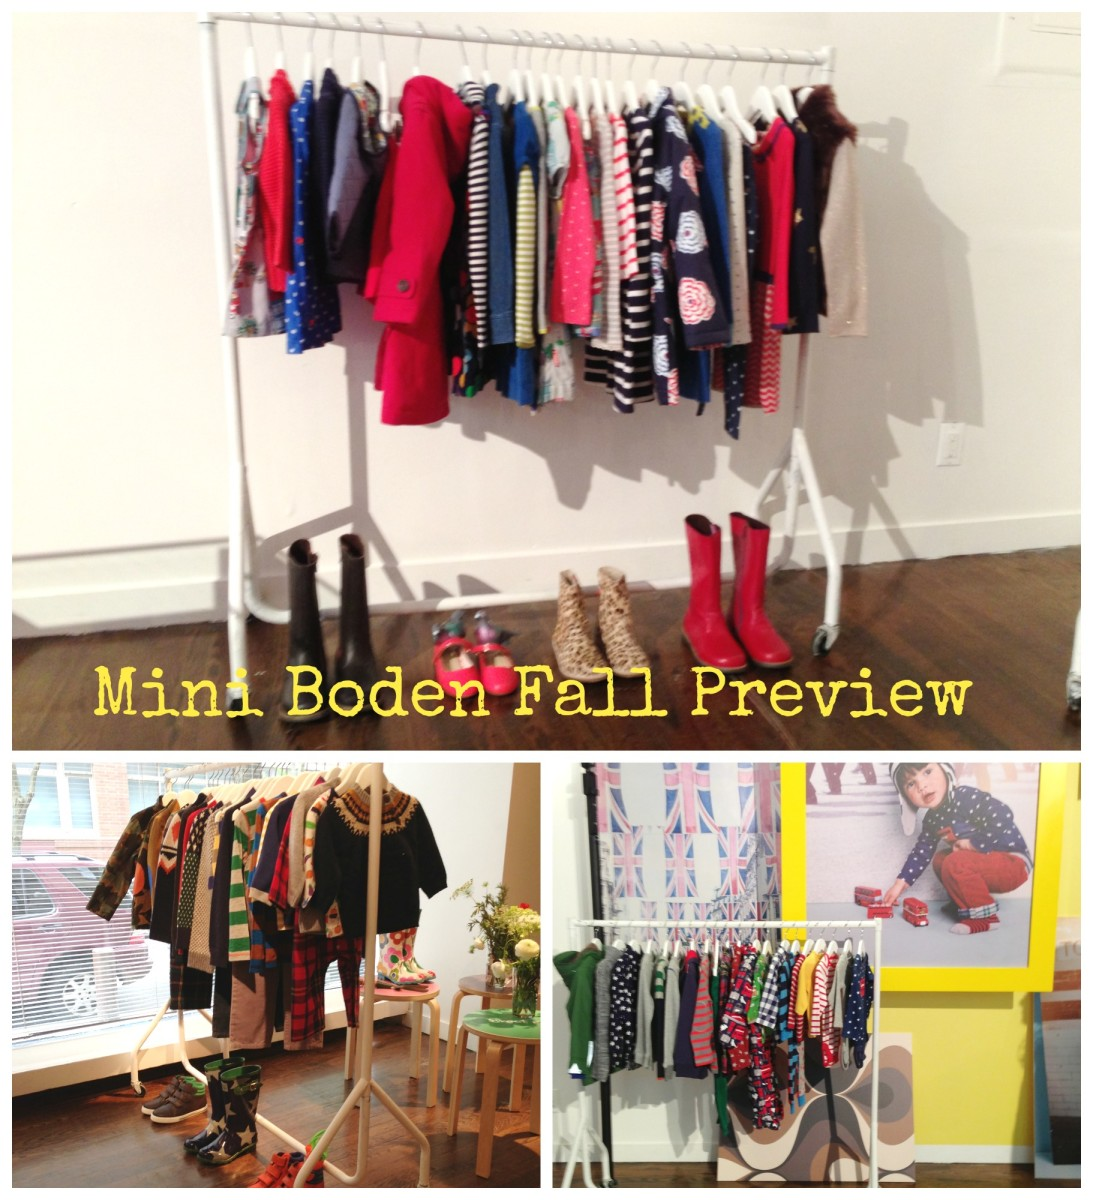 Brianne in the city land of nod preview boden fall for Boden preview uk